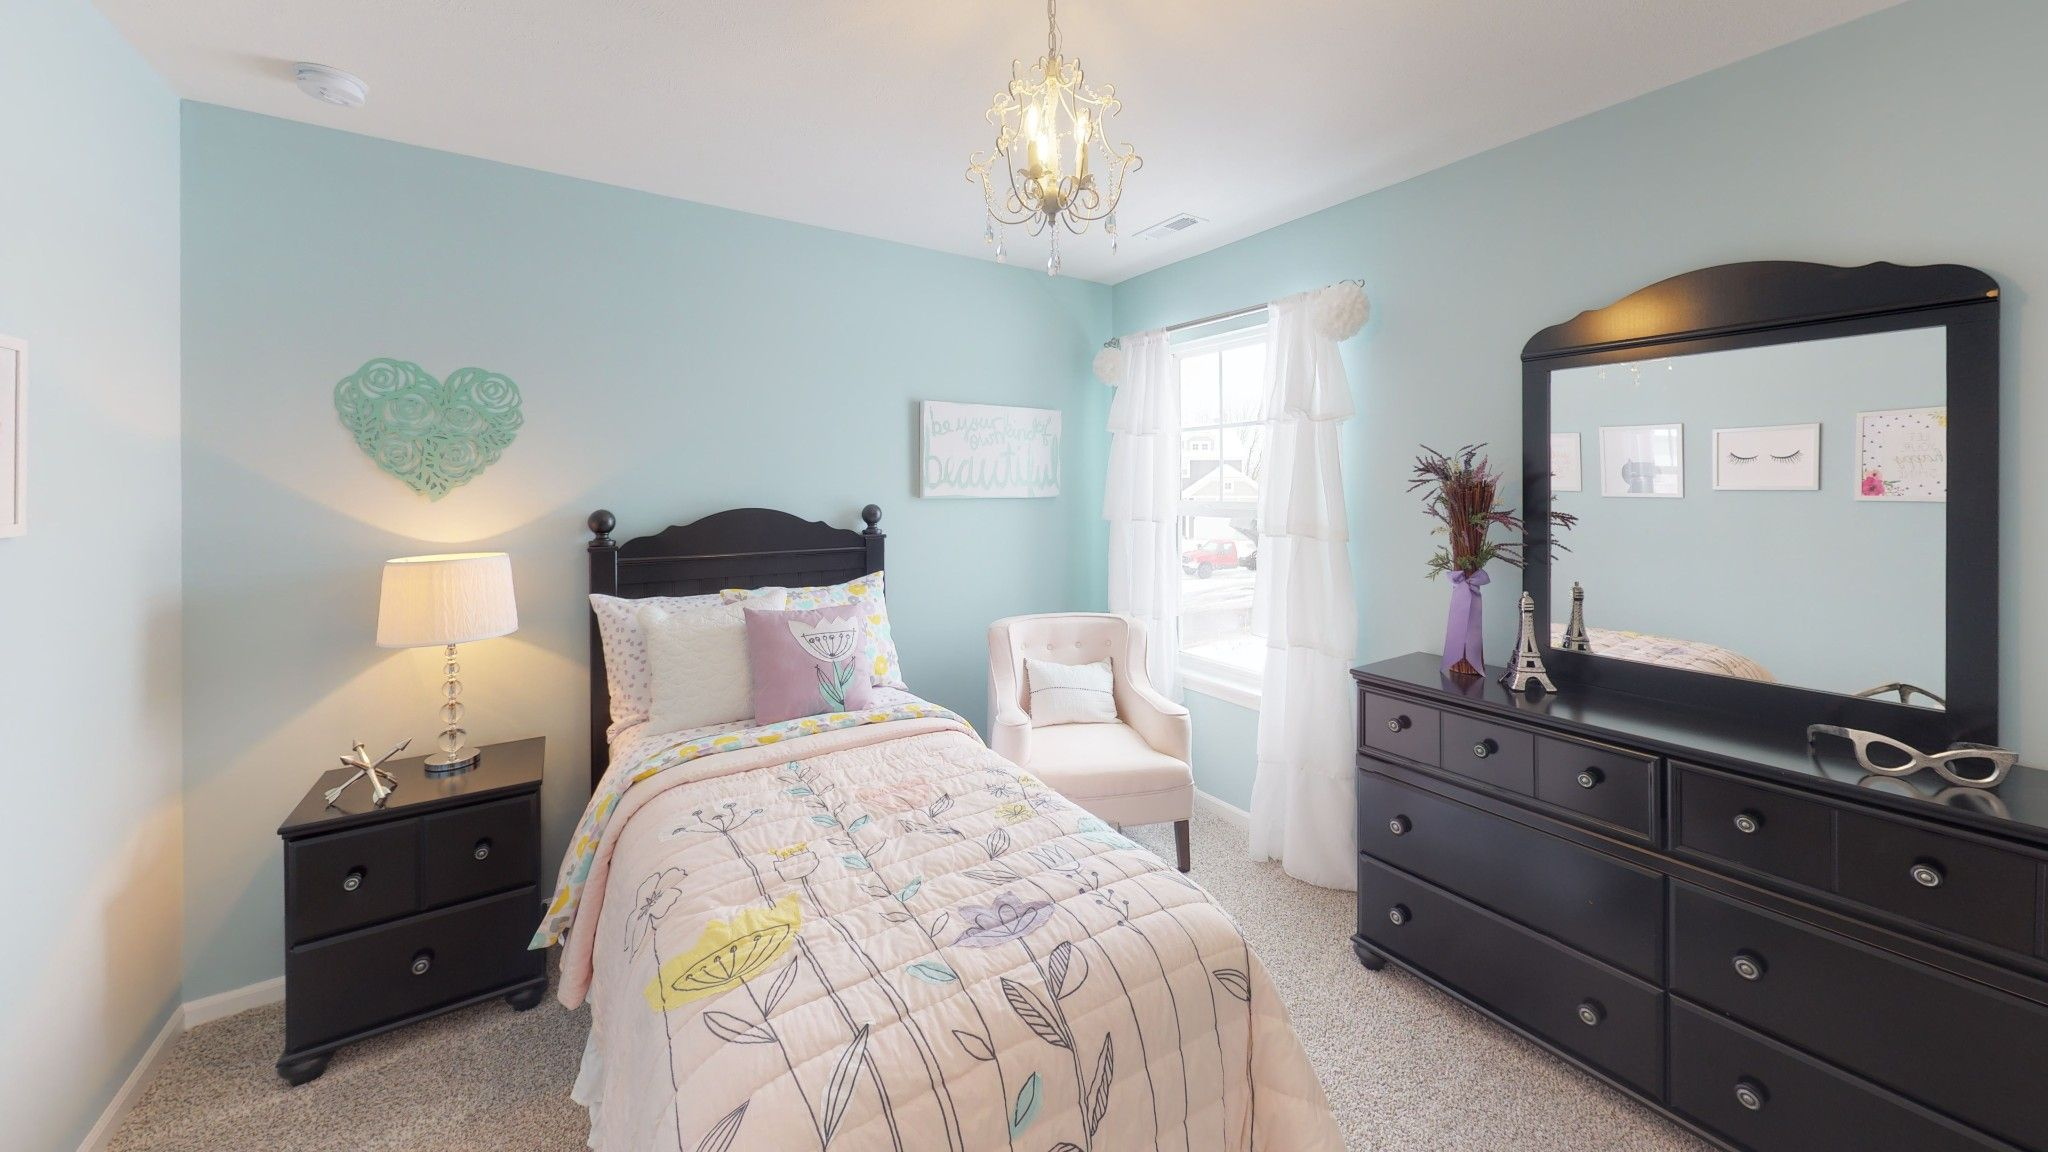 Bedroom featured in the Linden By Olthof Homes in Indianapolis, IN